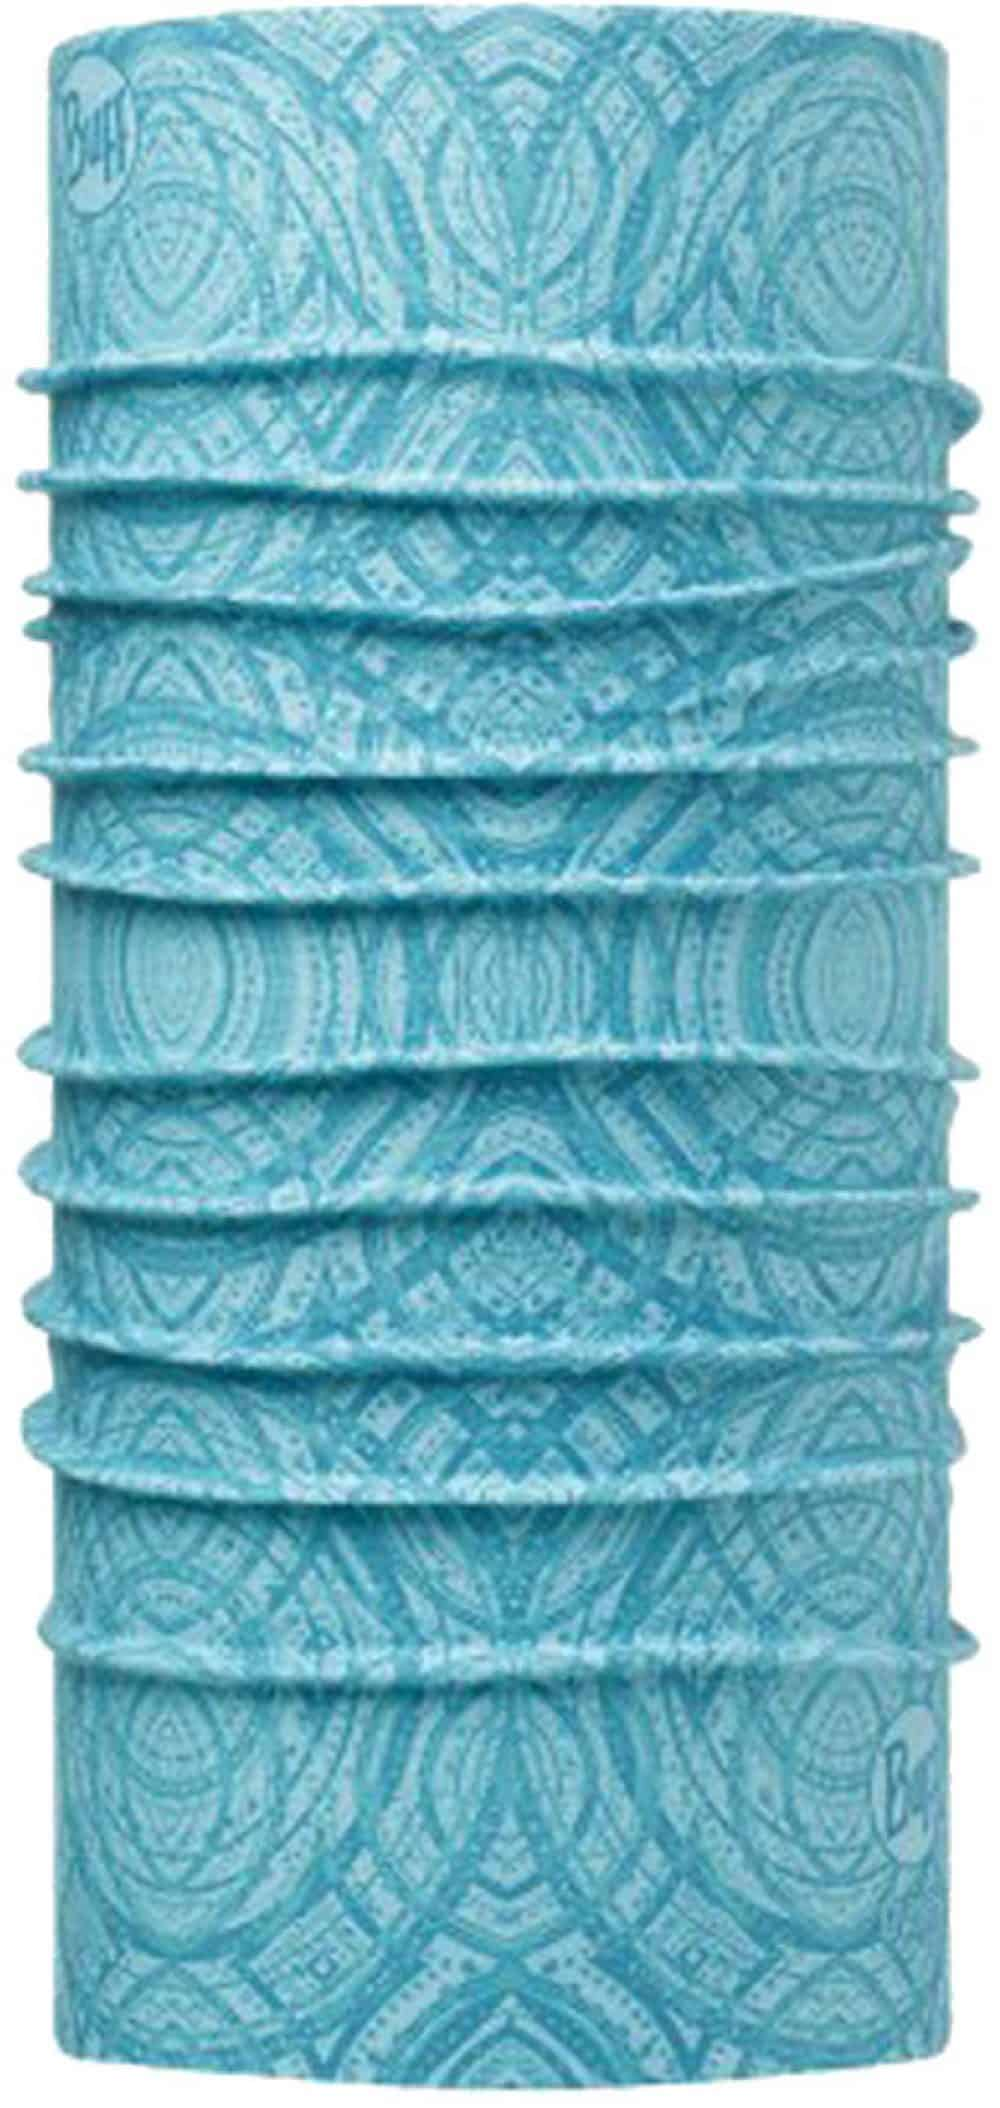 """Picture of the High UV Buff® design """"Mash Turquoise"""". A geometric pattern in turquoise. It is a one sided printed design. The inside is white."""